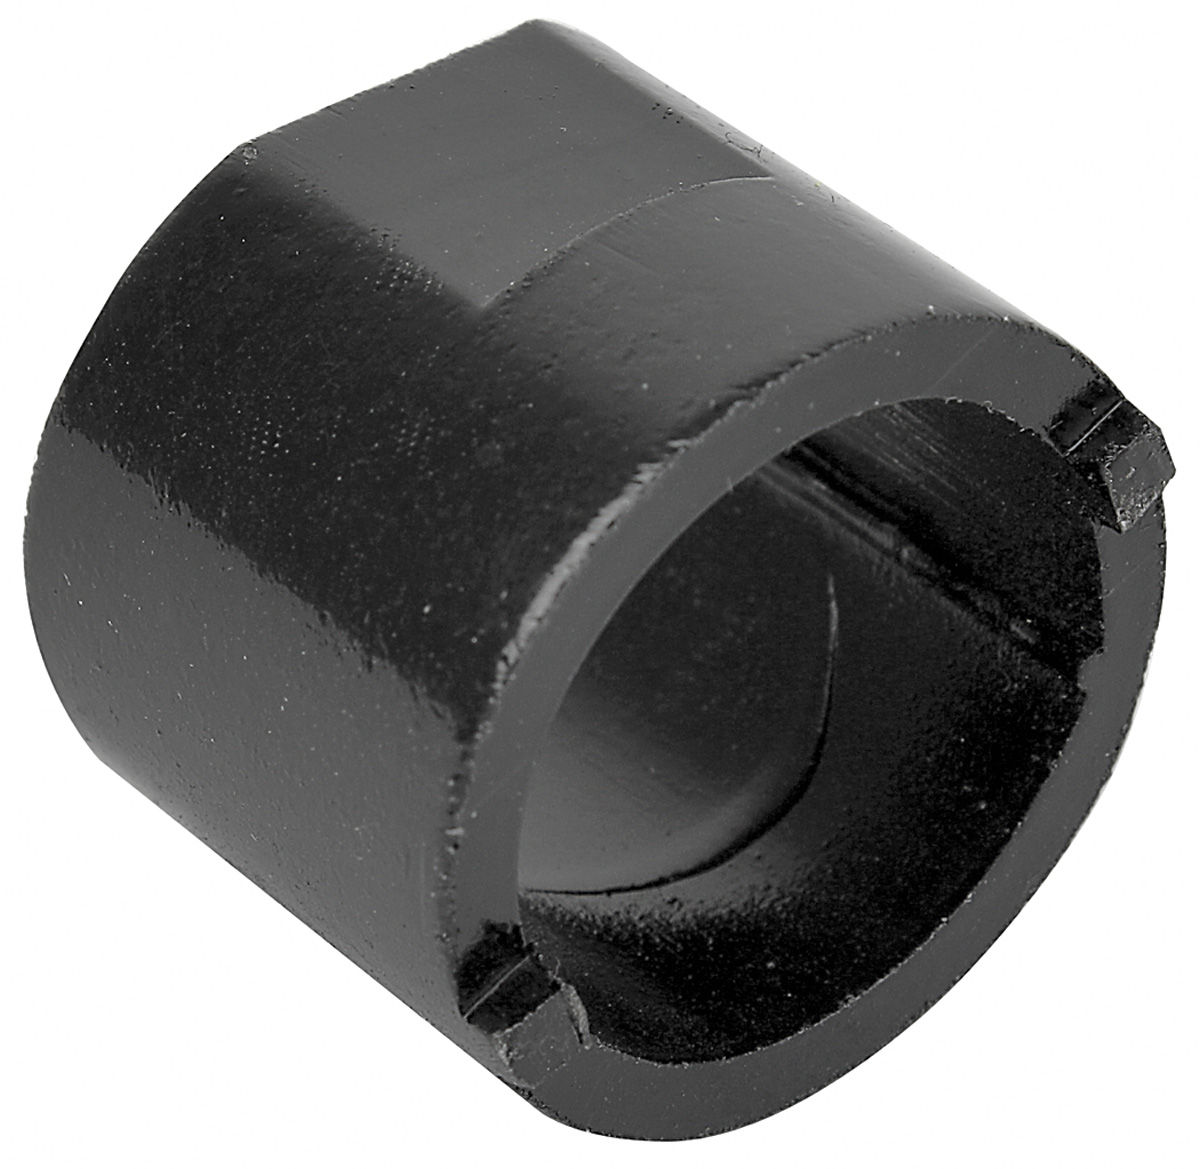 Tool, 1967-68 Cadillac, Ignition Nut